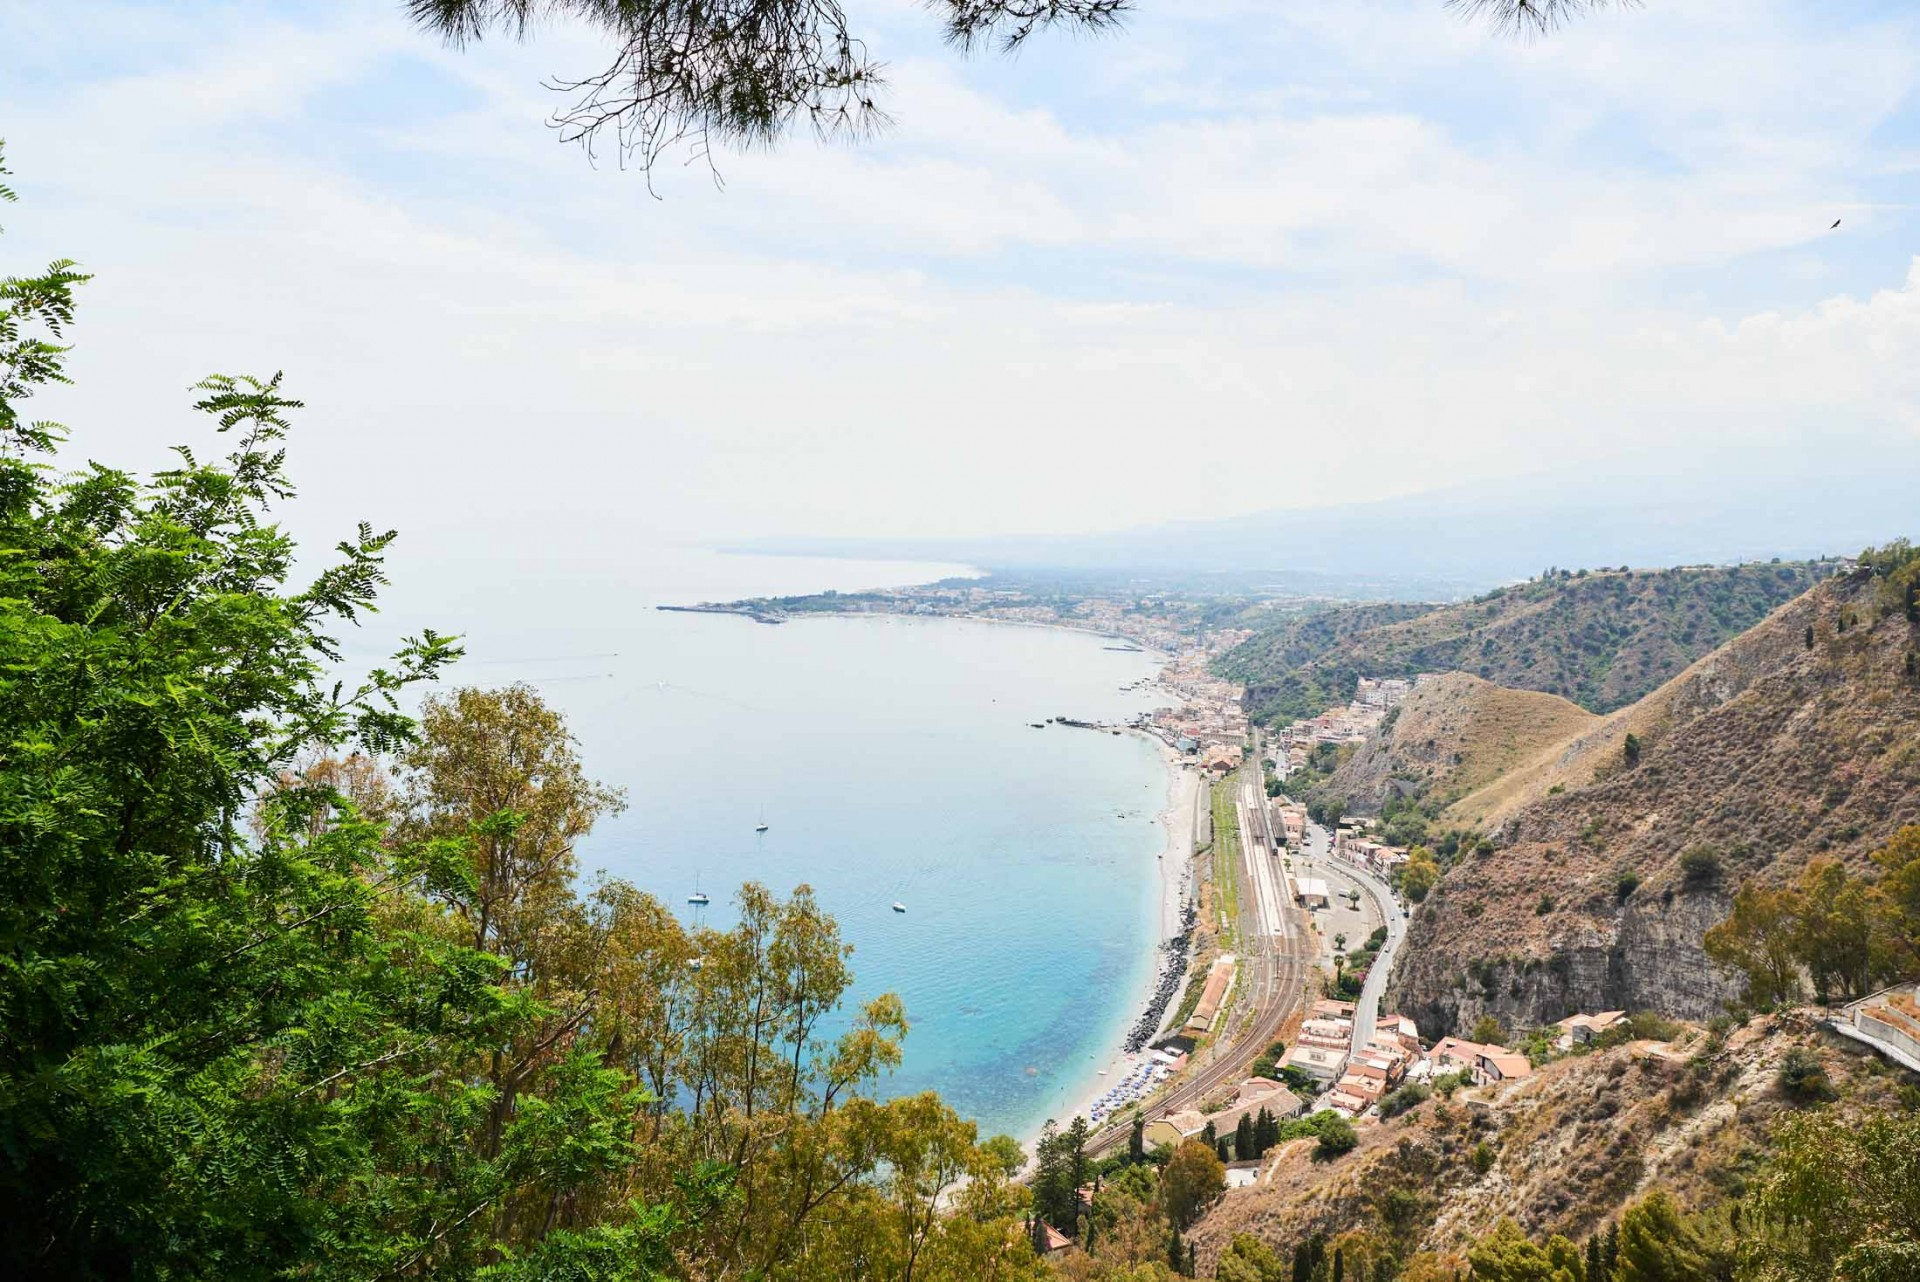 Landscape sea and beach view of Taormina, Sicily in Italy